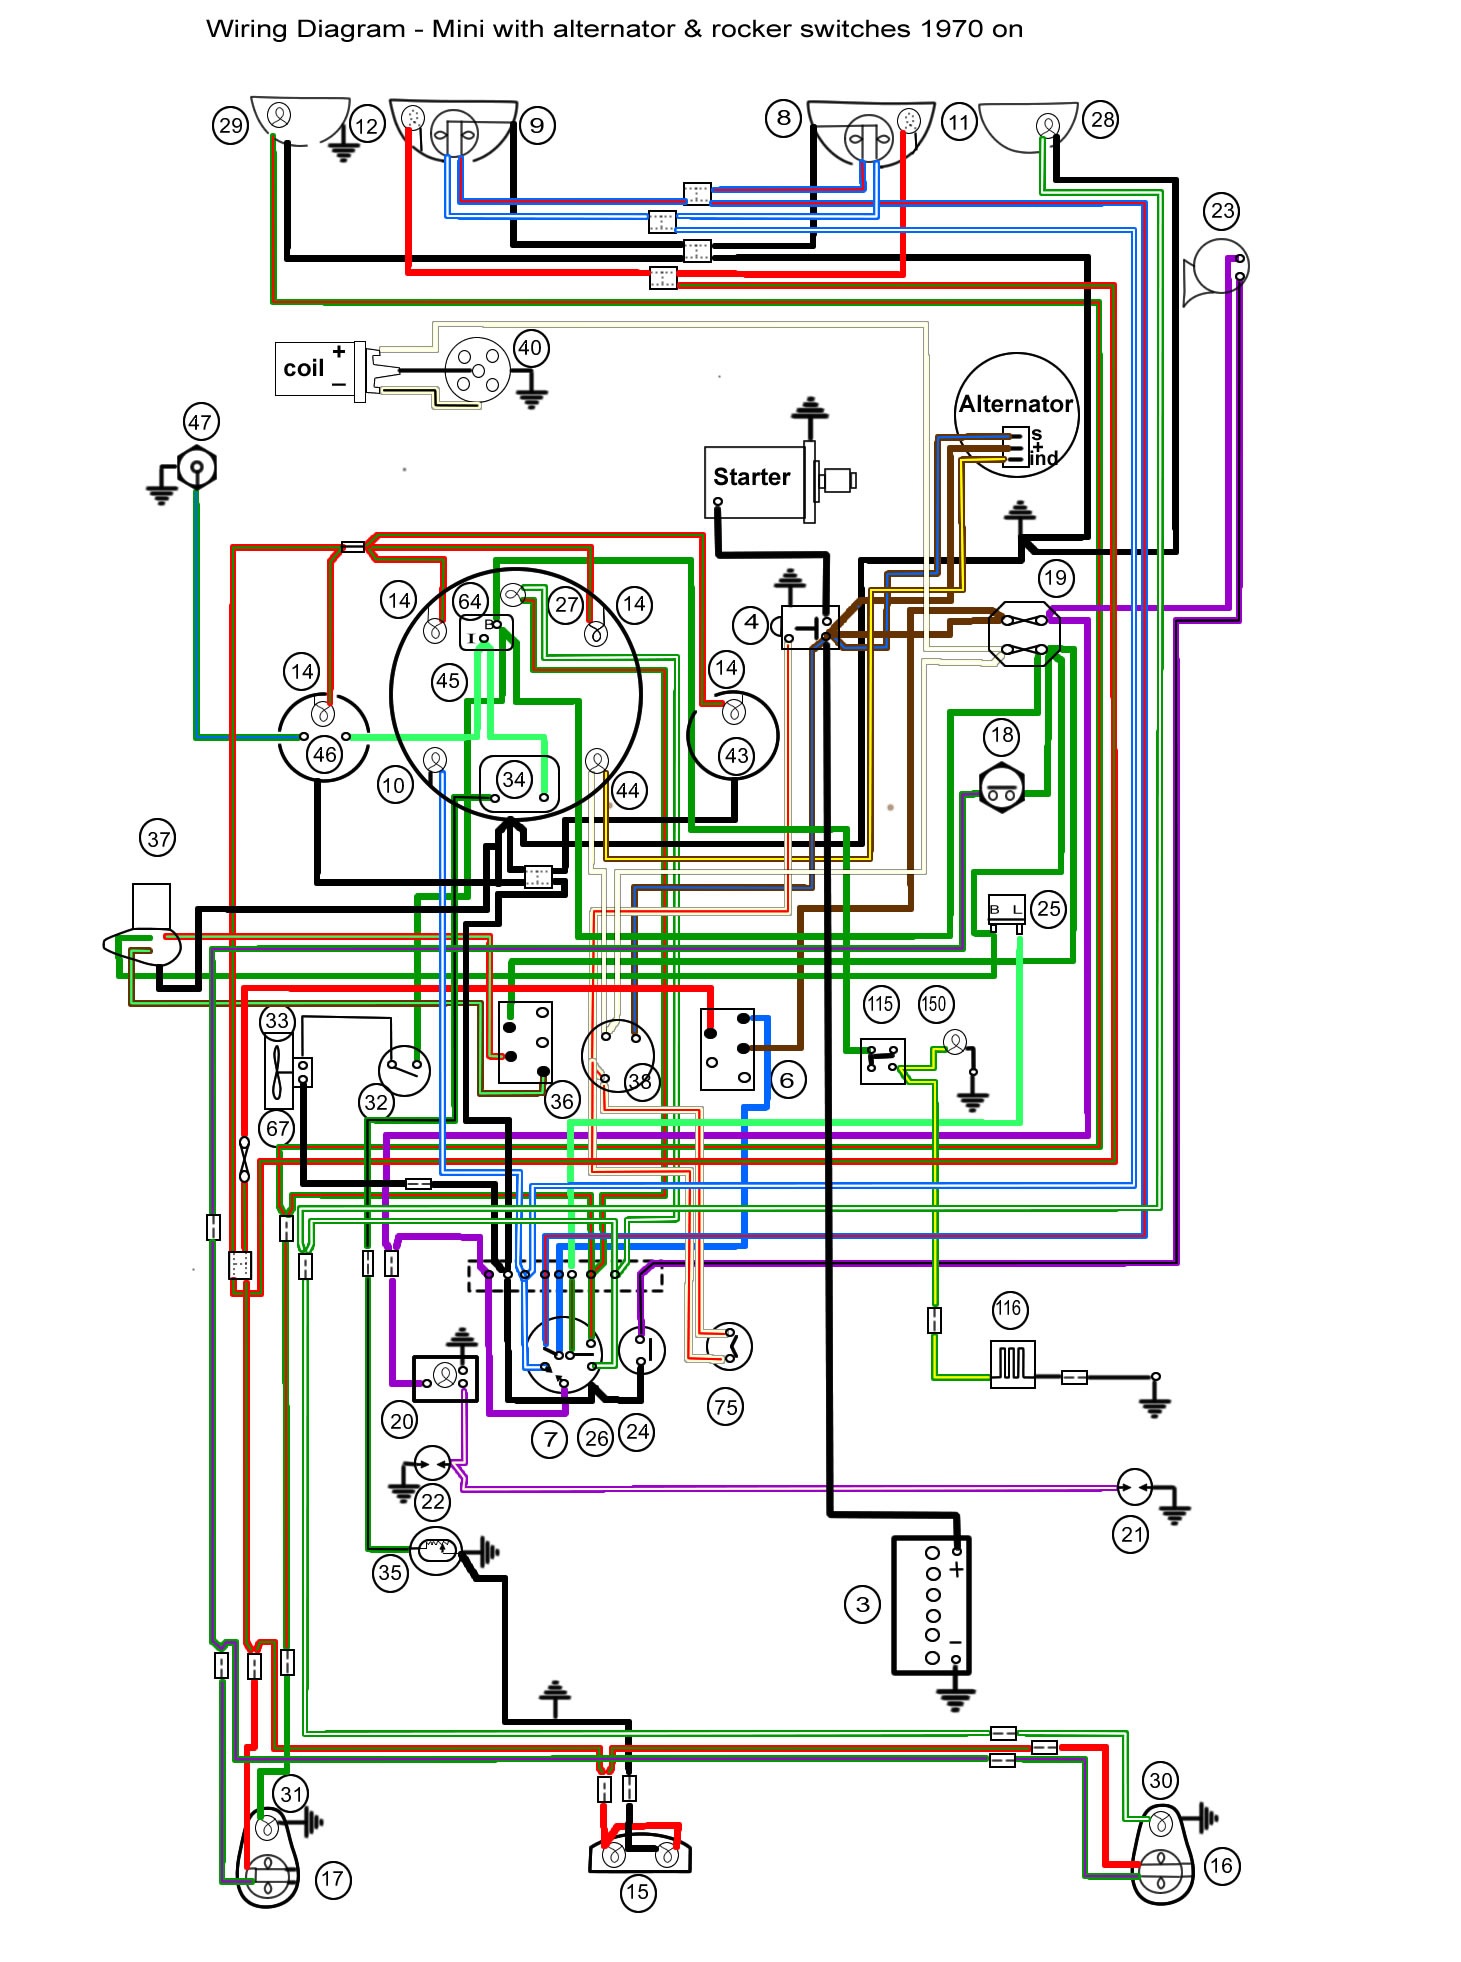 Wiring Diagram For Mini Cooper : Minifinity the classic mini forum and resource view